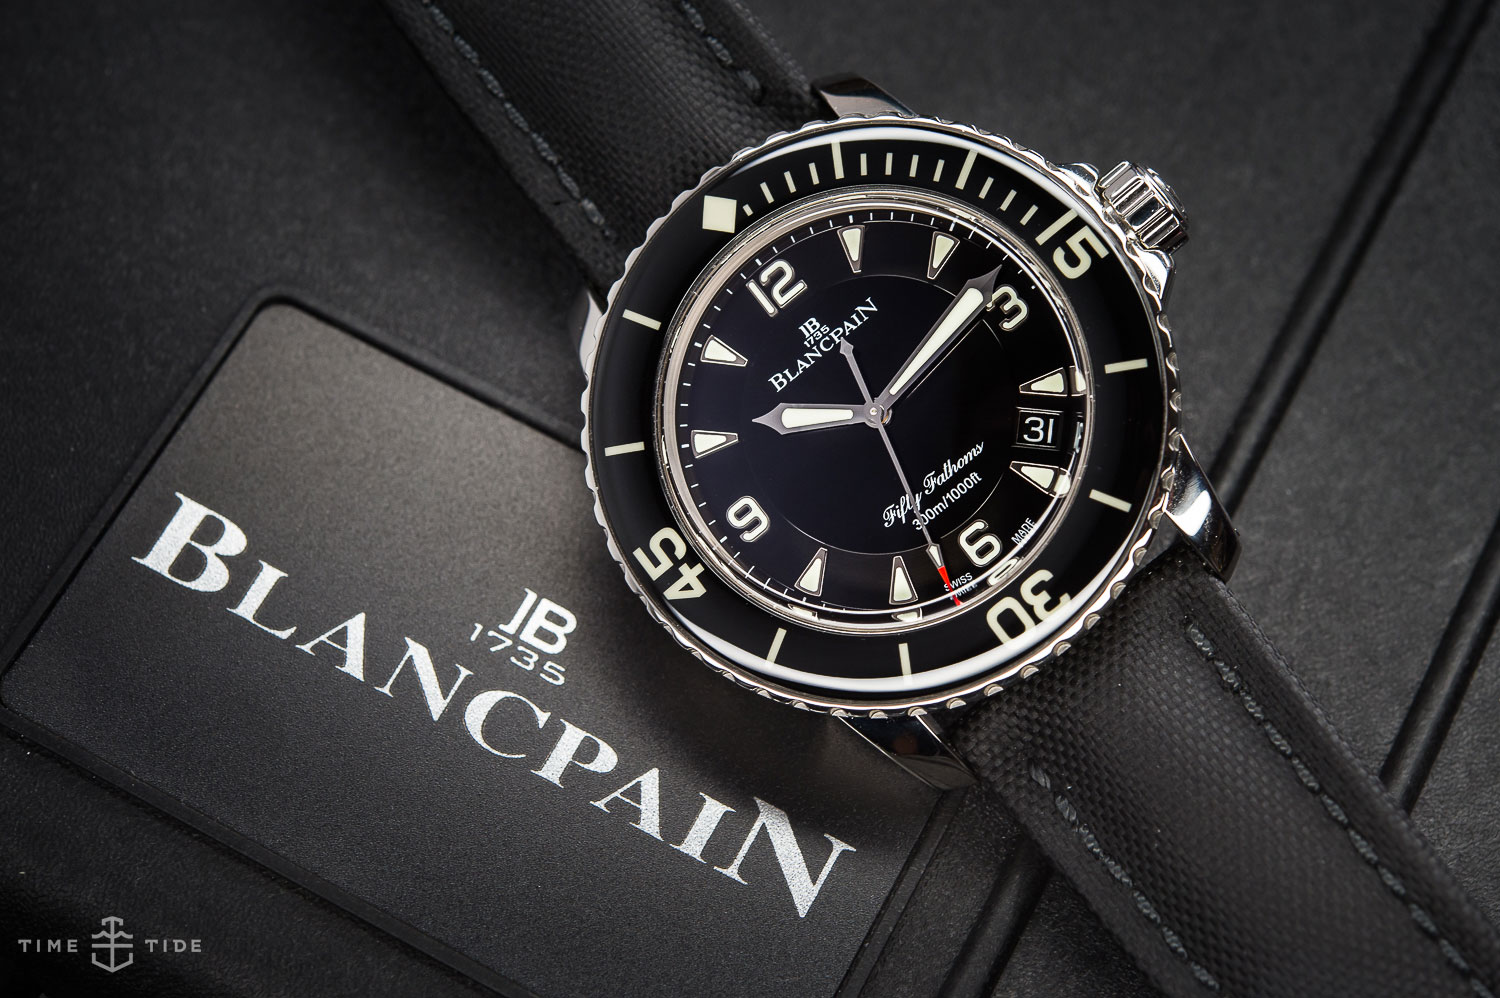 Why I Love the Blancpain Fifty Fathoms